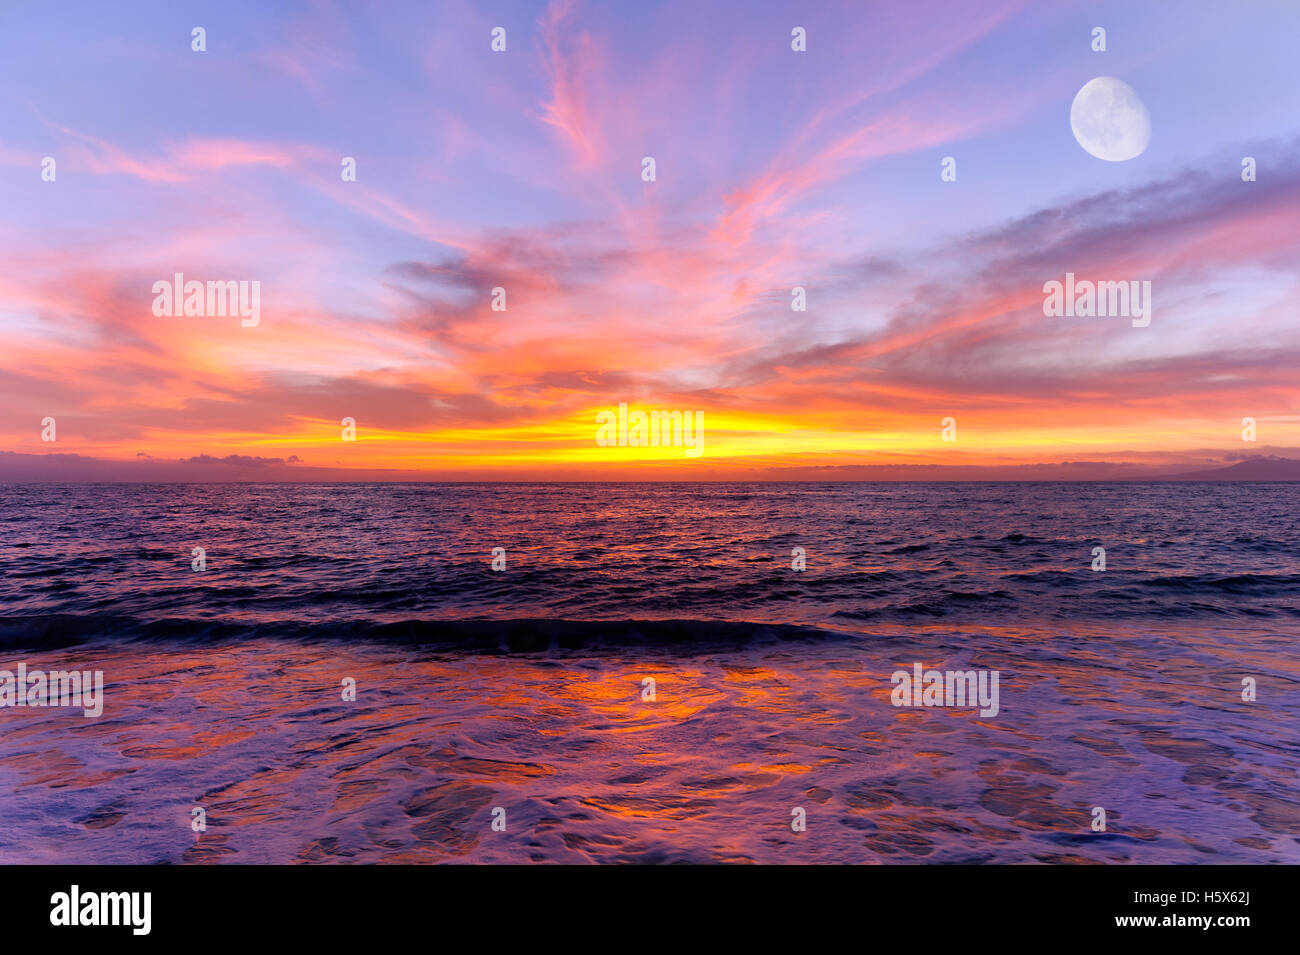 Sunset ocean moon is a colorful scenic ocean sunset setting with the moon rising in the sky. - Stock Image